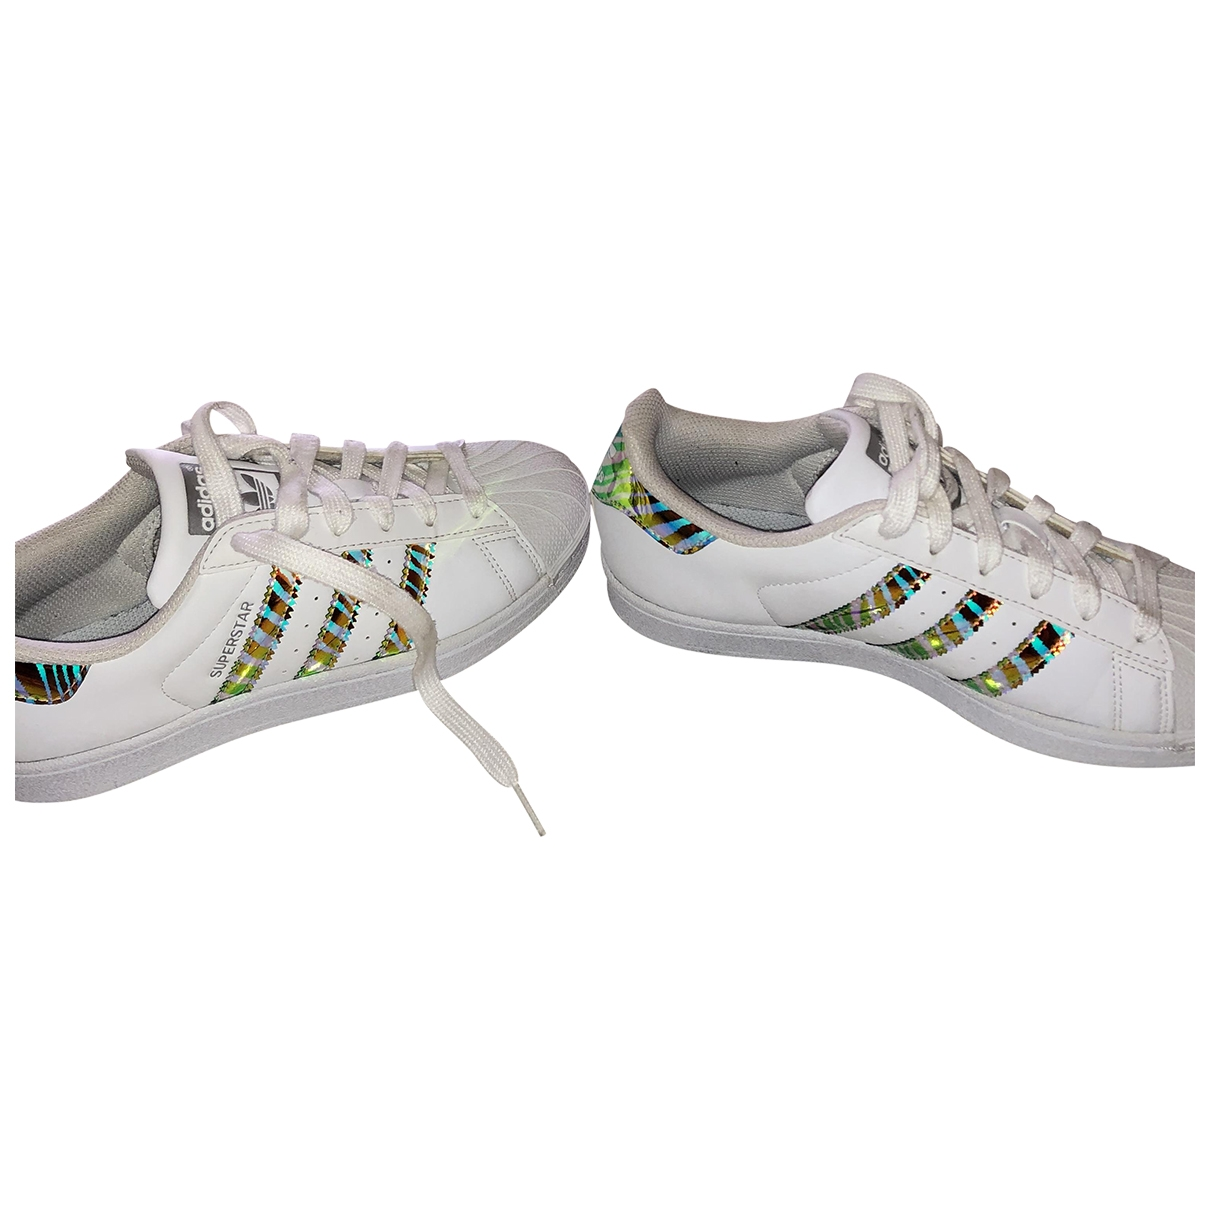 Adidas Superstar White Leather Trainers for Women 37 EU